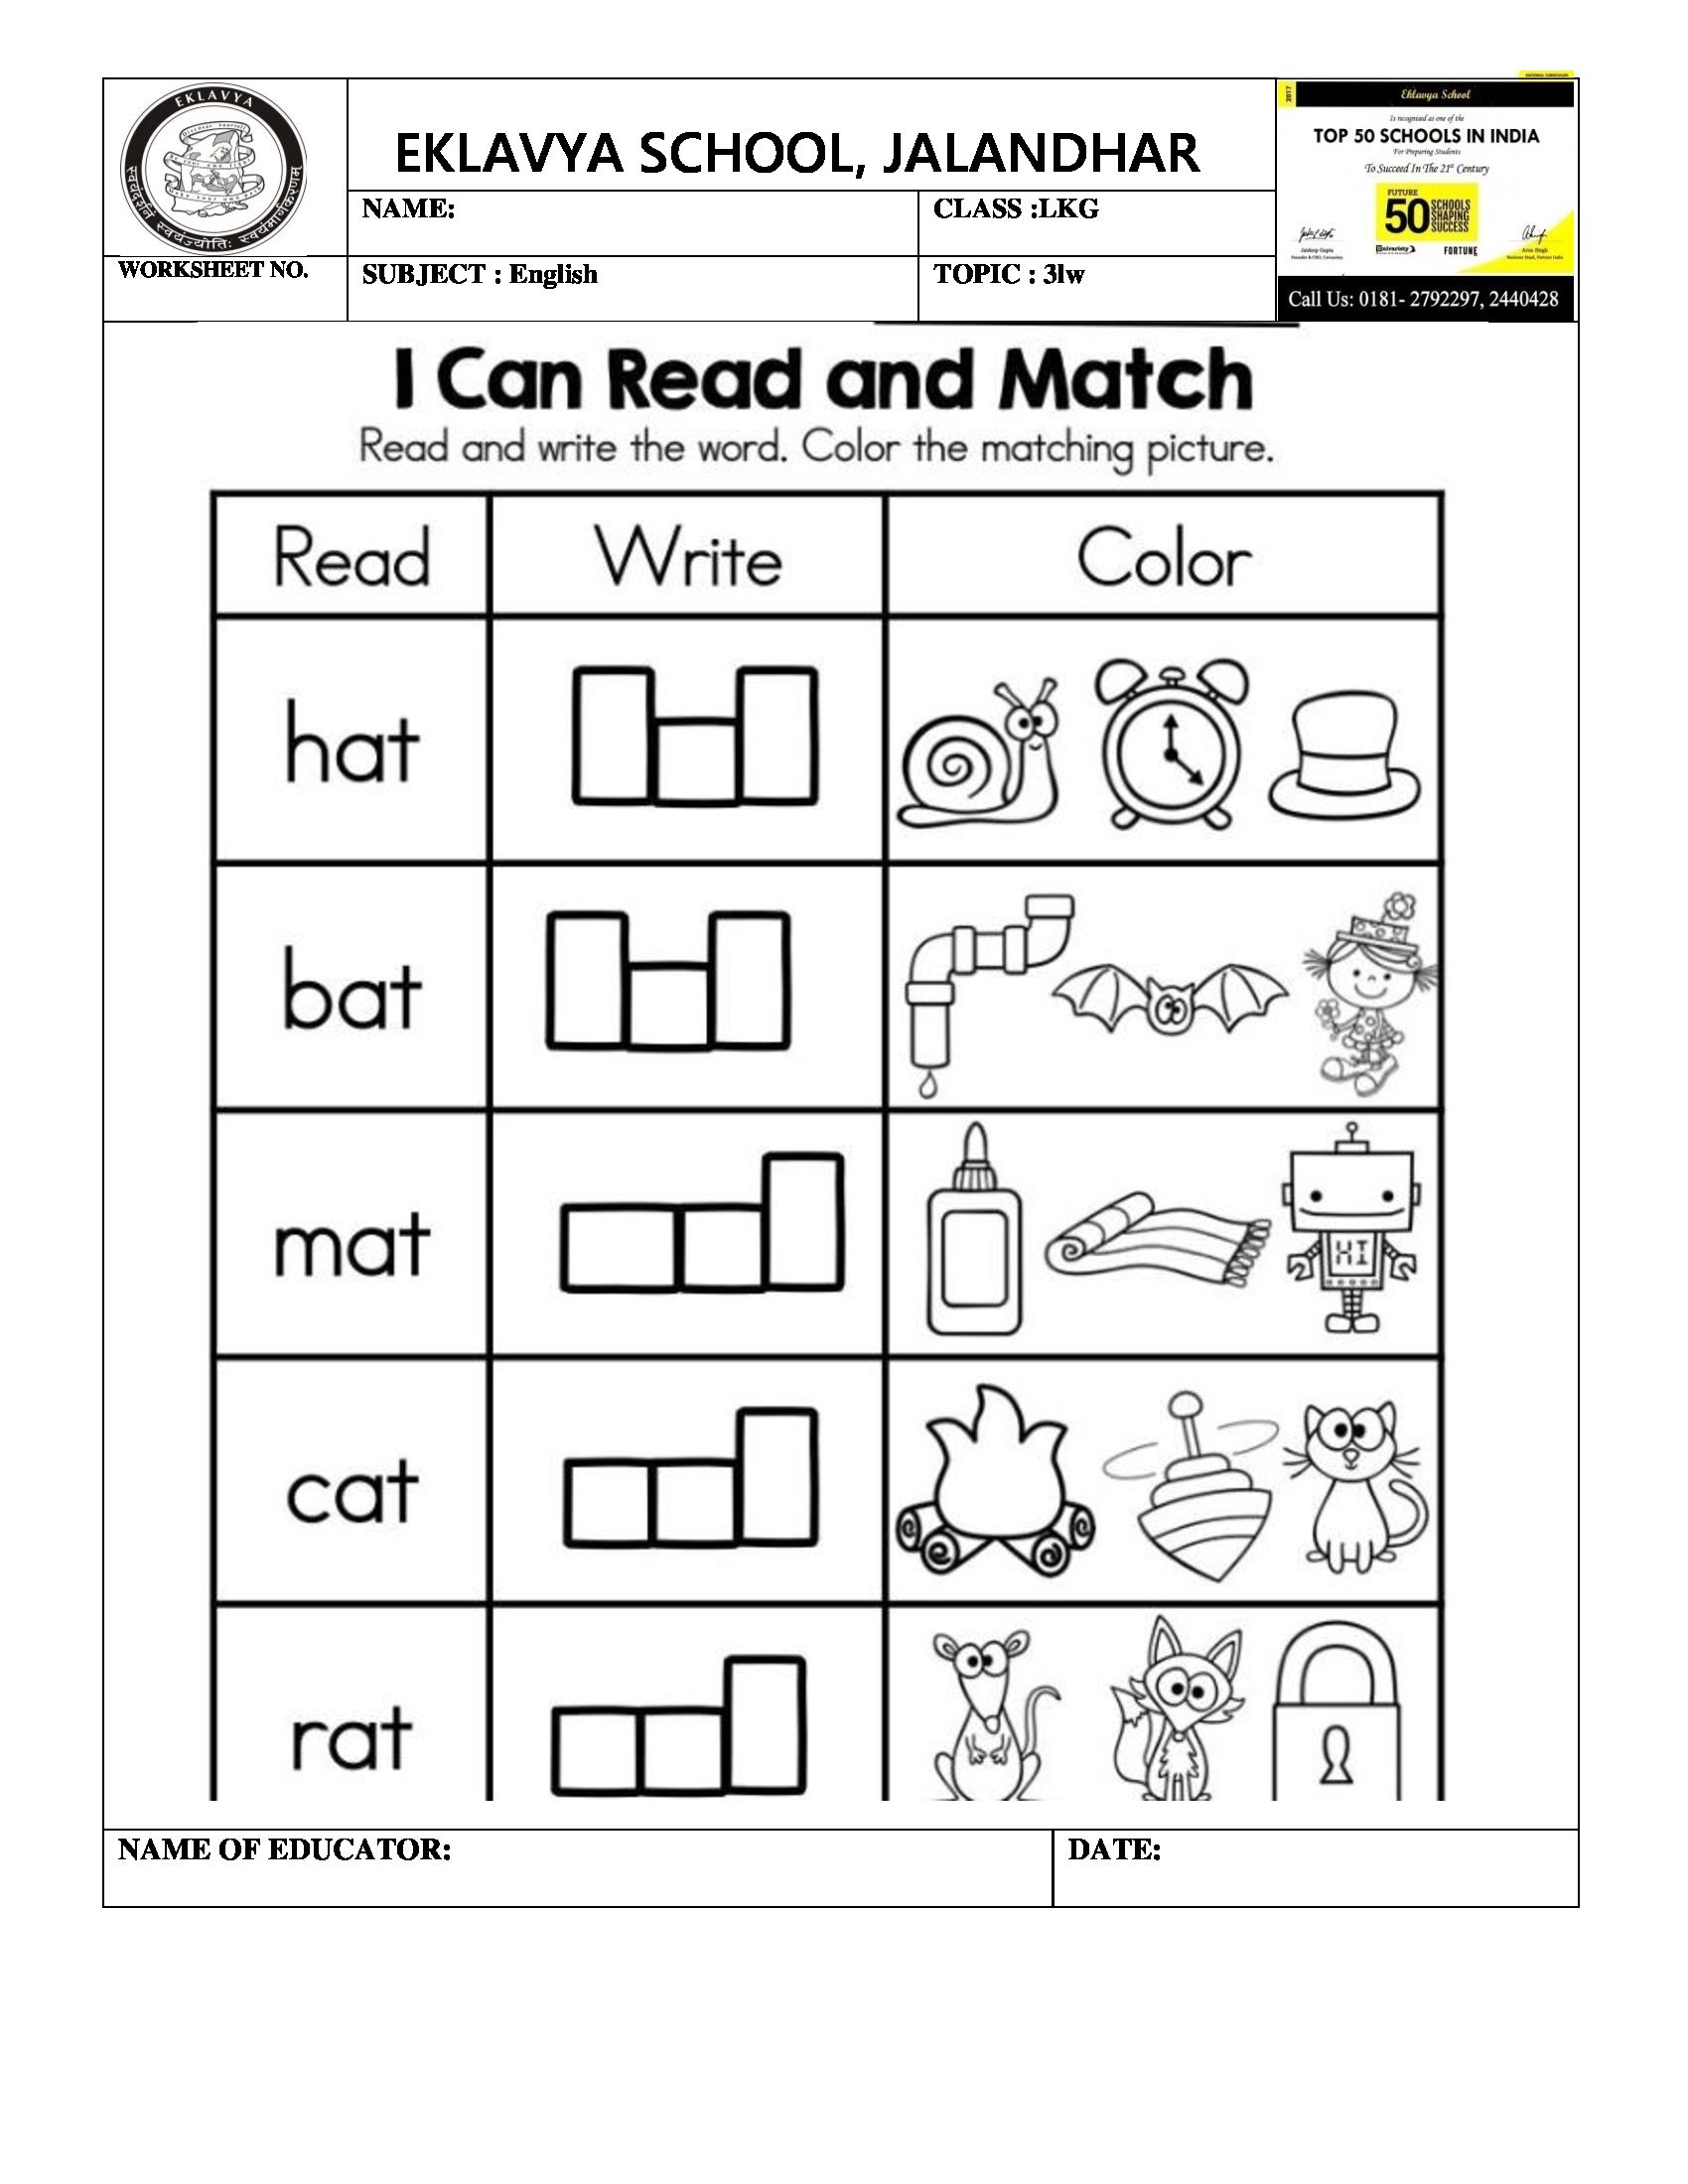 Worksheet On Three Letter Words | Three Letter Words, Letter within Tracing 3 Letter Words Worksheets